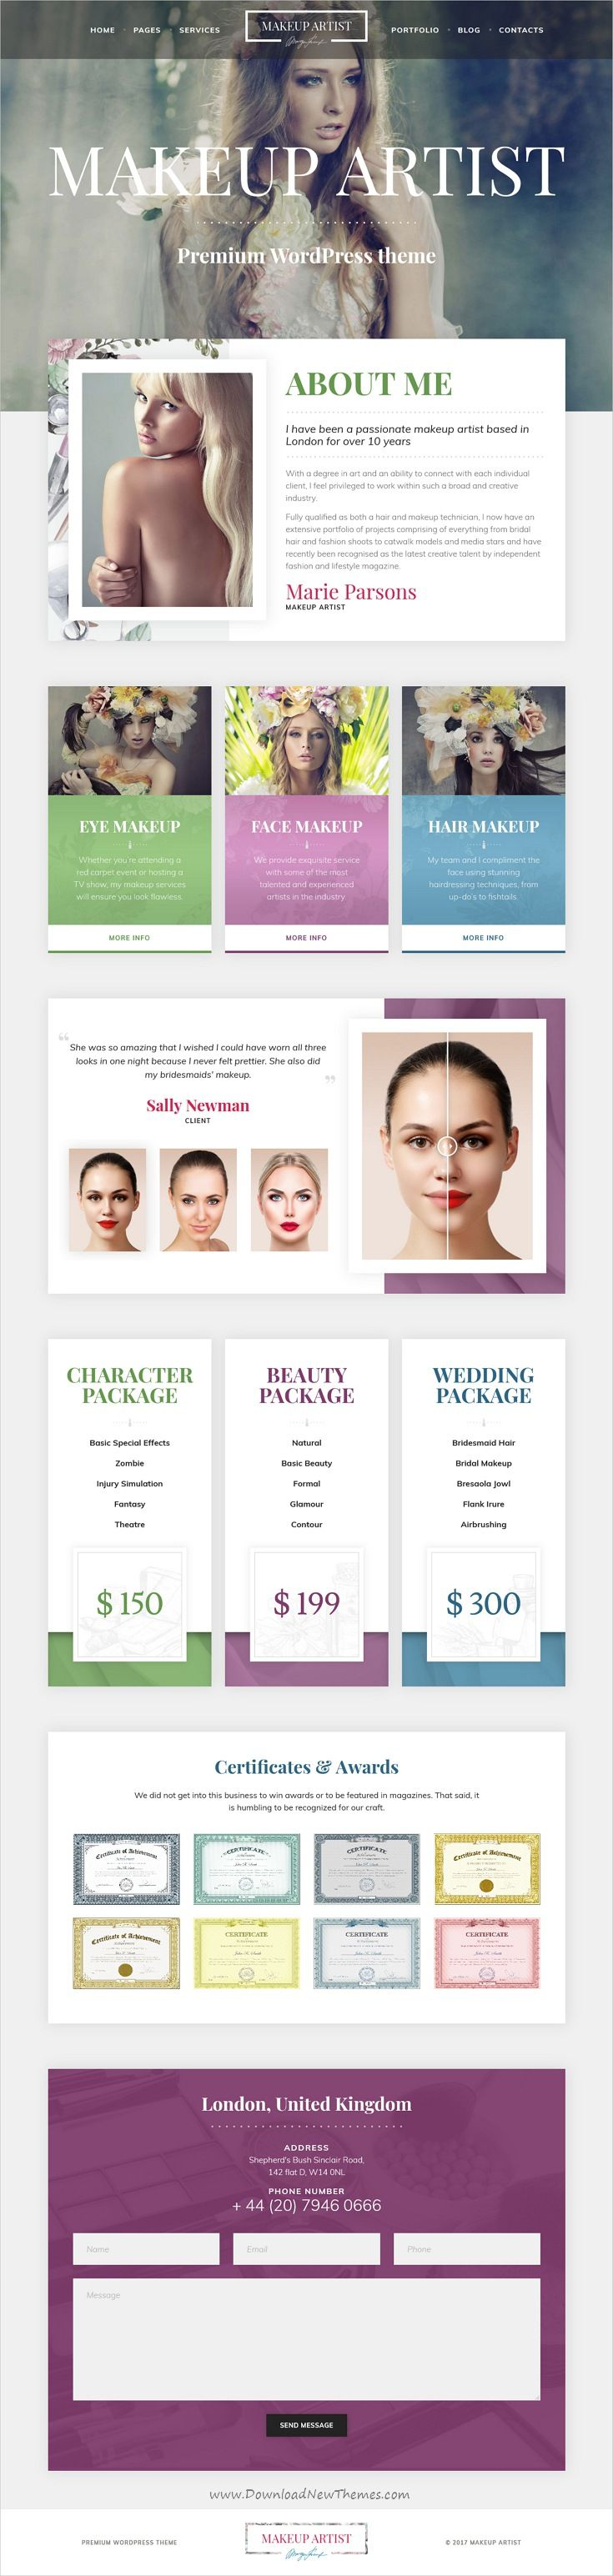 MakeUp Artist Pro Is Clean And Modern Design Responsive WordPress Template For Hair Stylist Beautician Makeup Website Download Now